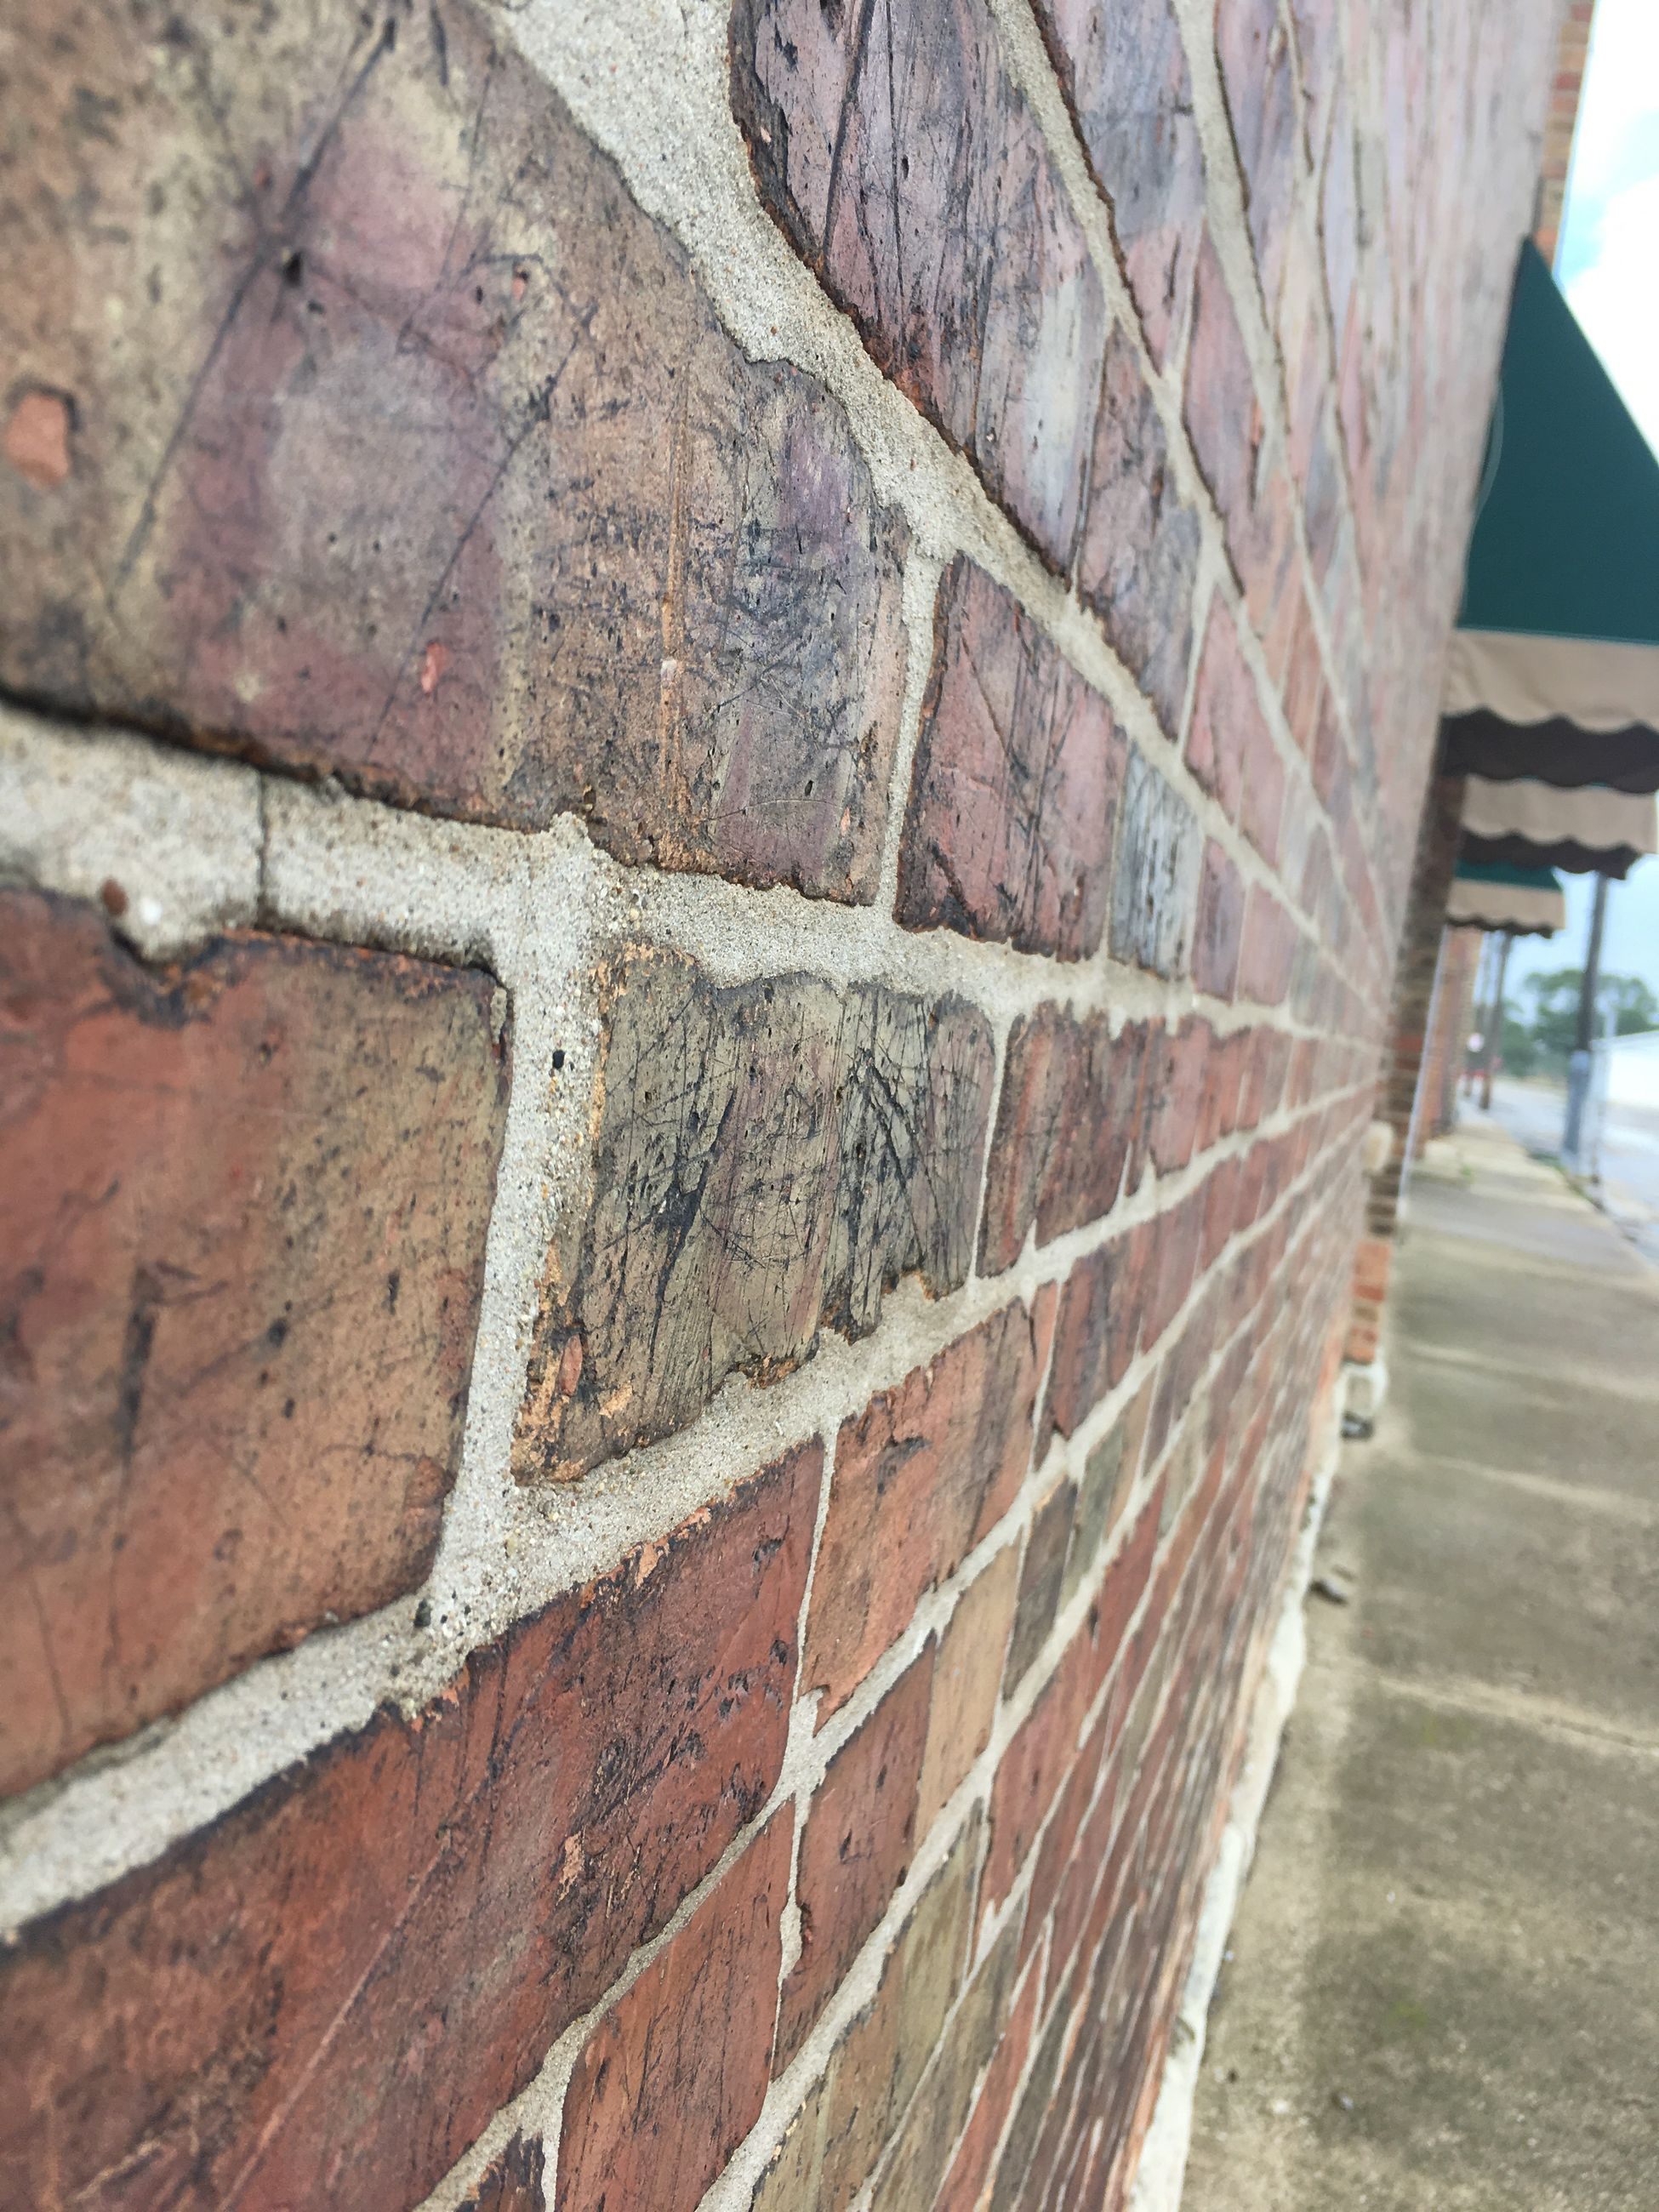 architecture, built structure, wall - building feature, building exterior, day, footpath, architectural feature, stone material, no people, pedestrian walkway